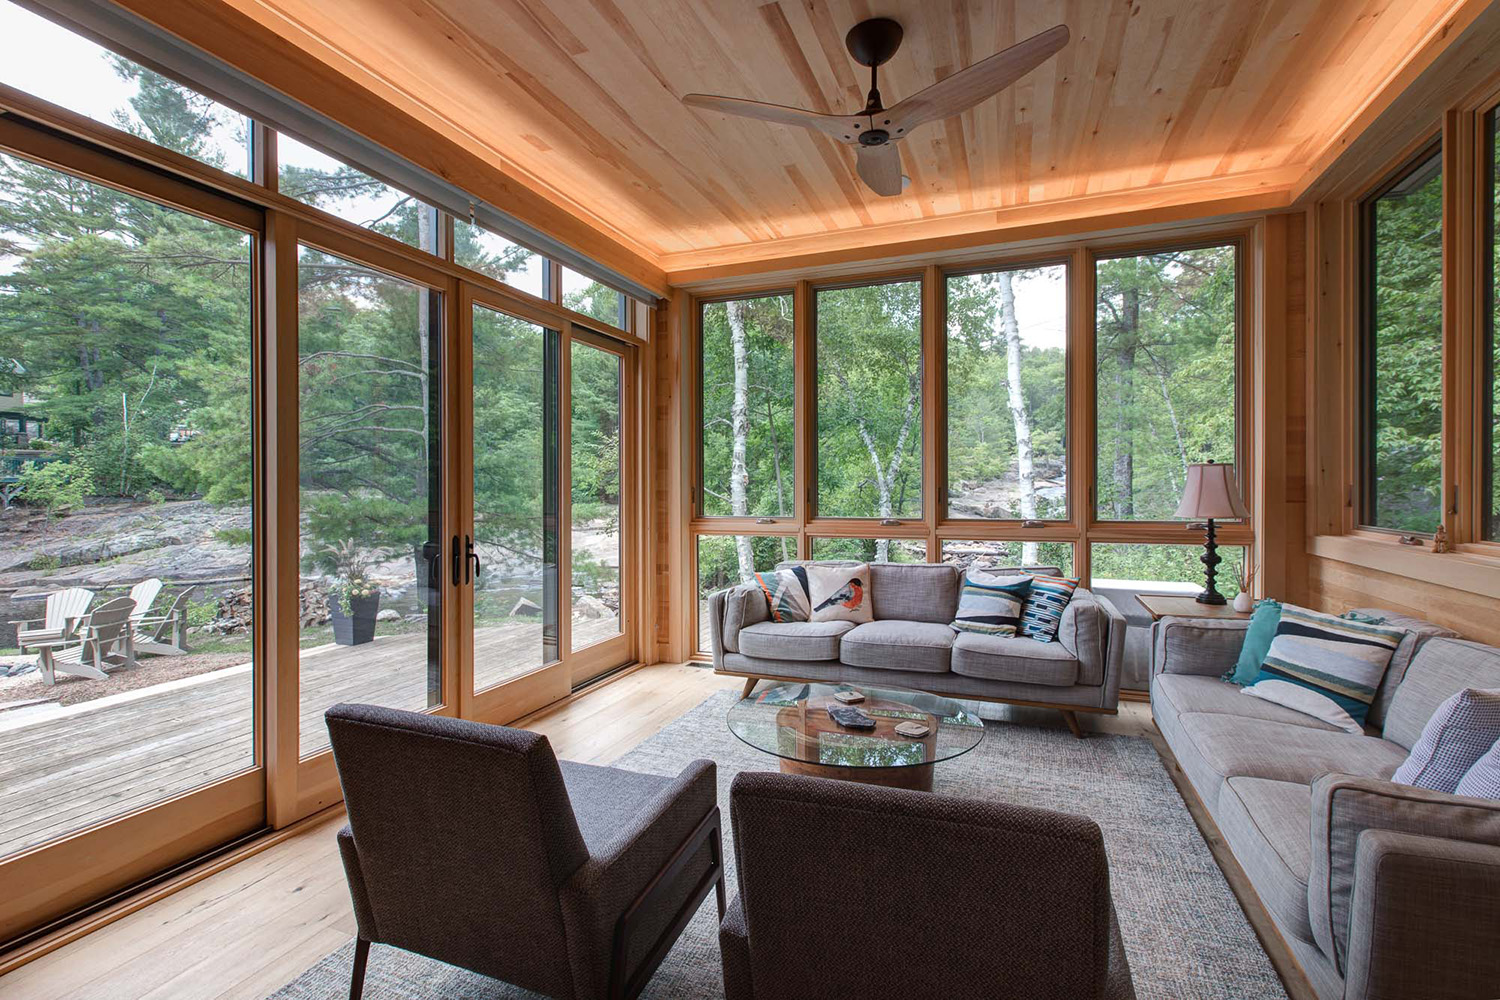 Cottage sunroom with wrap around wood frame windows and casement windows with recessed valance light